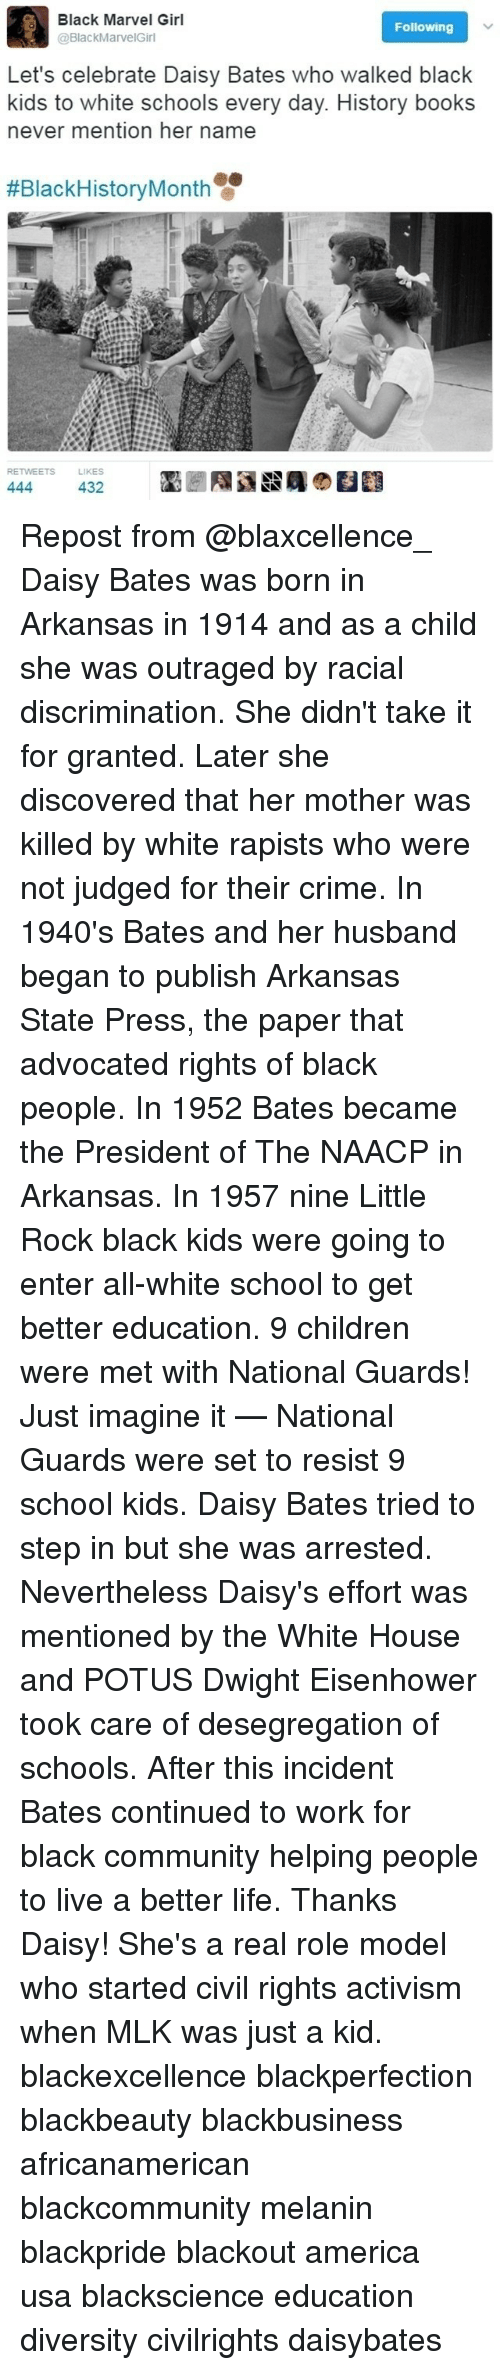 America, Black History Month, and Books: Black Marvel Girl  Following  @Black MarvelGirl  Let's celebrate Daisy Bates who walked black  kids to white schools every day. History books  never mention her name  #Black History Month  ETS LIKES  444  432 Repost from @blaxcellence_ Daisy Bates was born in Arkansas in 1914 and as a child she was outraged by racial discrimination. She didn't take it for granted. Later she discovered that her mother was killed by white rapists who were not judged for their crime. In 1940's Bates and her husband began to publish Arkansas State Press, the paper that advocated rights of black people. In 1952 Bates became the President of The NAACP in Arkansas. In 1957 nine Little Rock black kids were going to enter all-white school to get better education. 9 children were met with National Guards! Just imagine it — National Guards were set to resist 9 school kids. Daisy Bates tried to step in but she was arrested. Nevertheless Daisy's effort was mentioned by the White House and POTUS Dwight Eisenhower took care of desegregation of schools. After this incident Bates continued to work for black community helping people to live a better life. Thanks Daisy! She's a real role model who started civil rights activism when MLK was just a kid. blackexcellence blackperfection blackbeauty blackbusiness africanamerican blackcommunity melanin blackpride blackout america usa blackscience education diversity civilrights daisybates